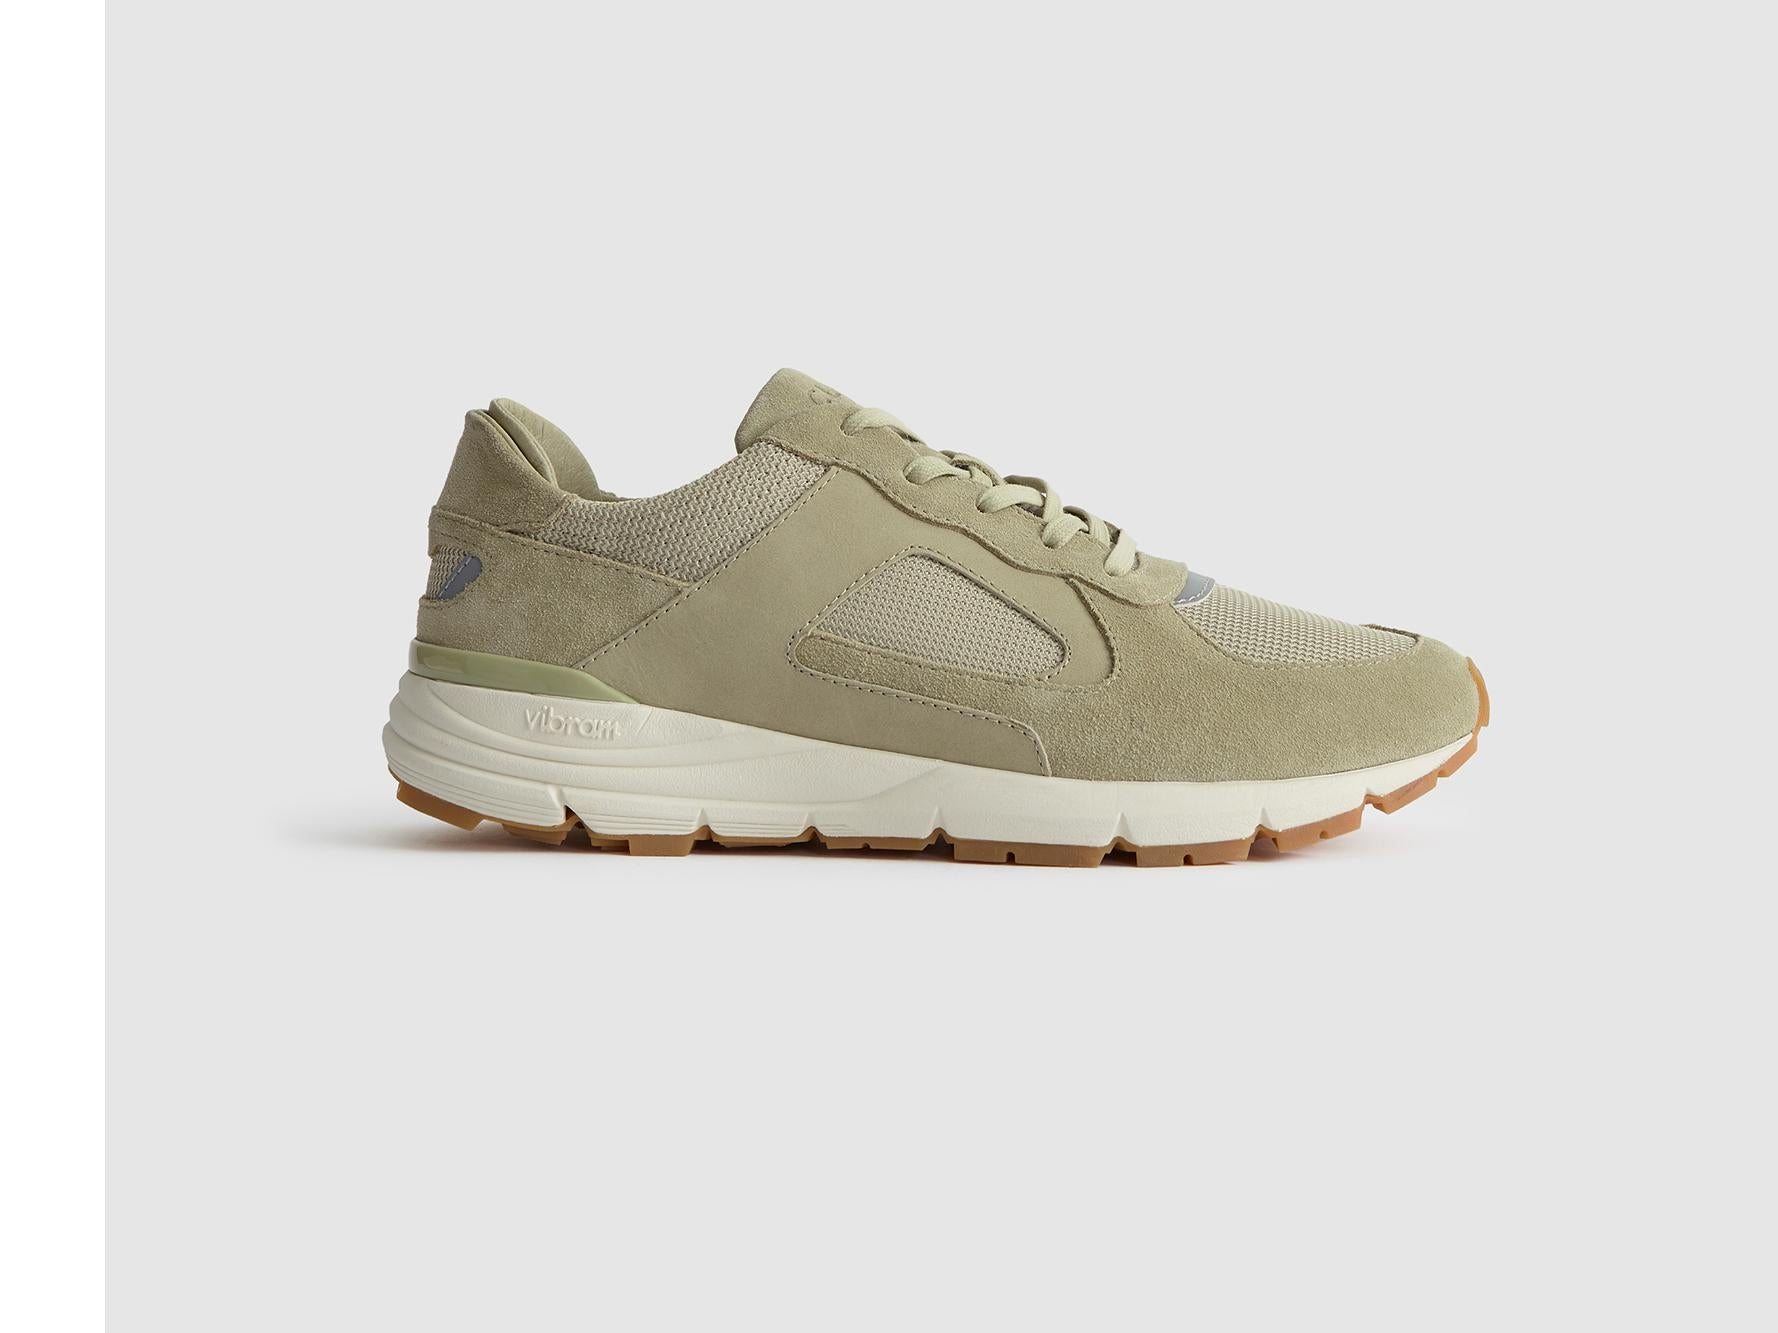 64c932cc0 Best men's trainers for all budgets, from high street to designer buys